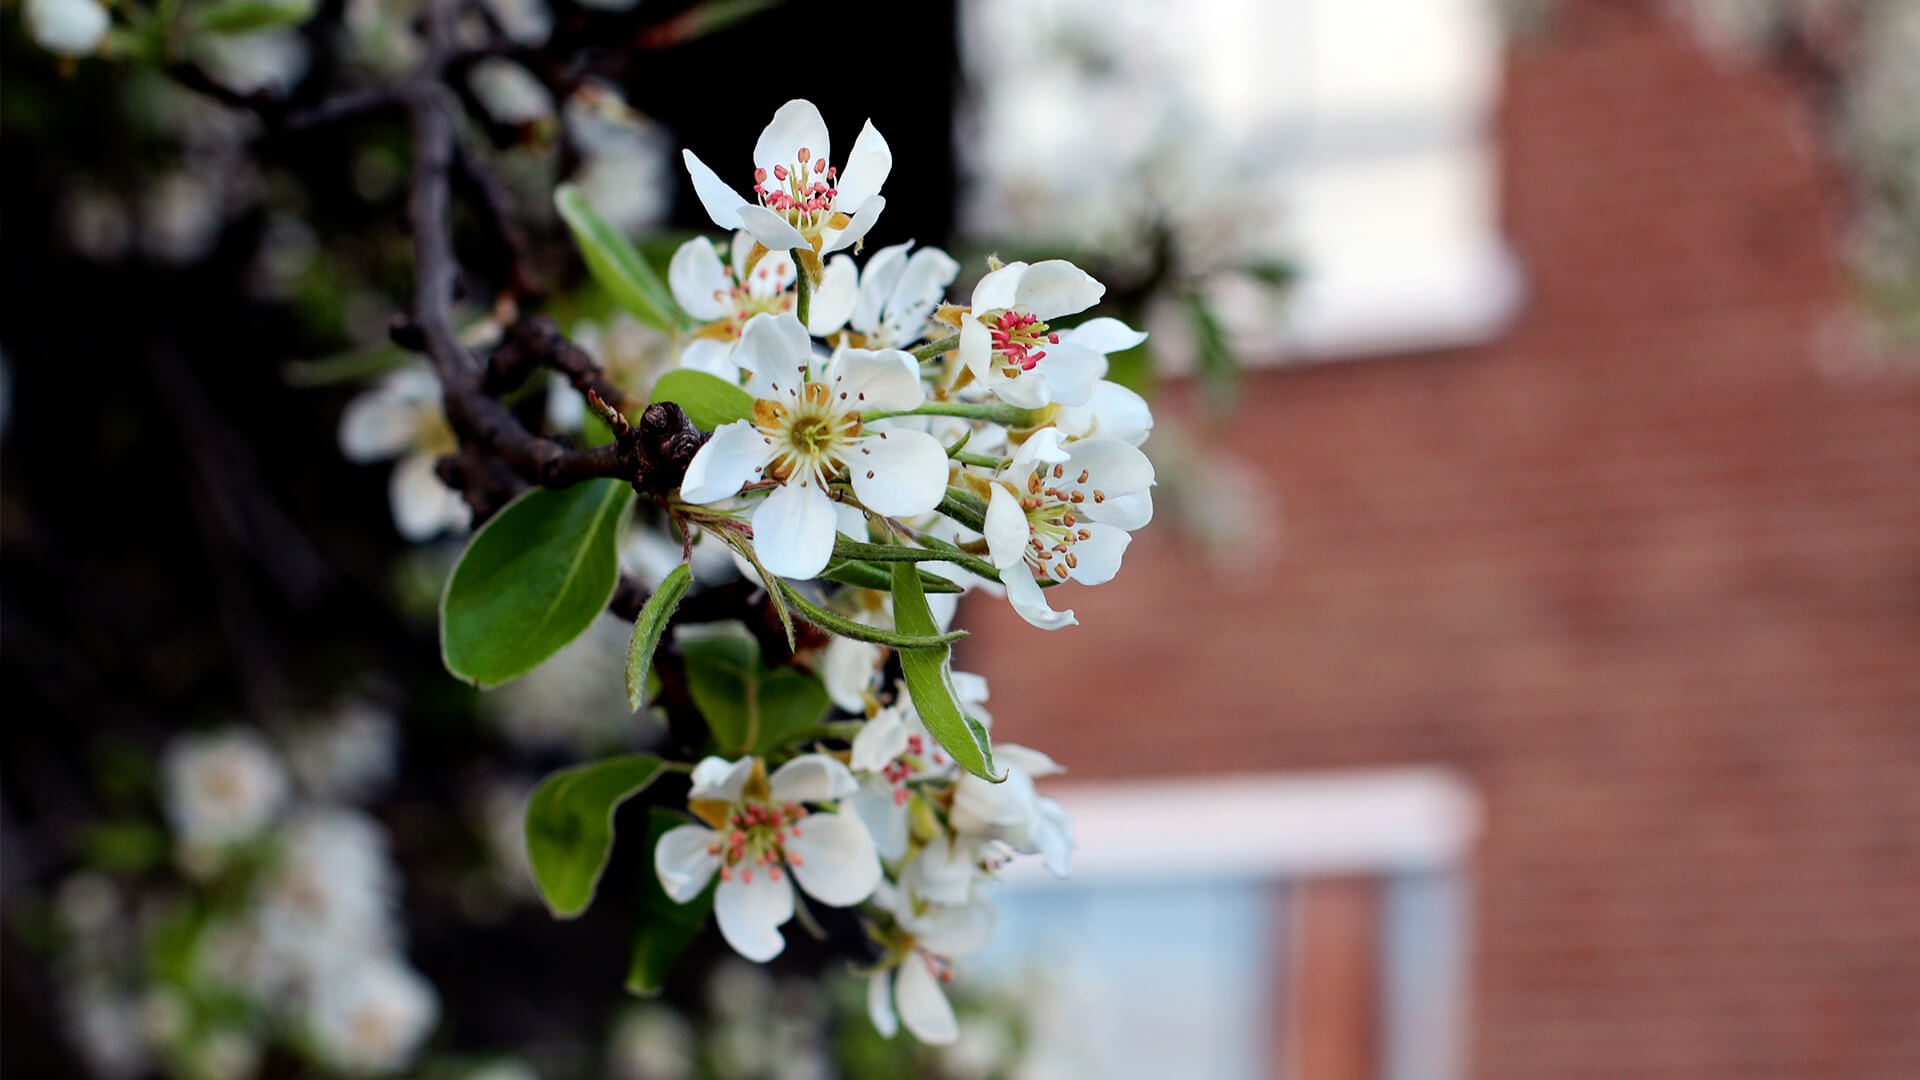 http://St%20Patrick's%20Tower%20Pear%20Tree%20Blossom